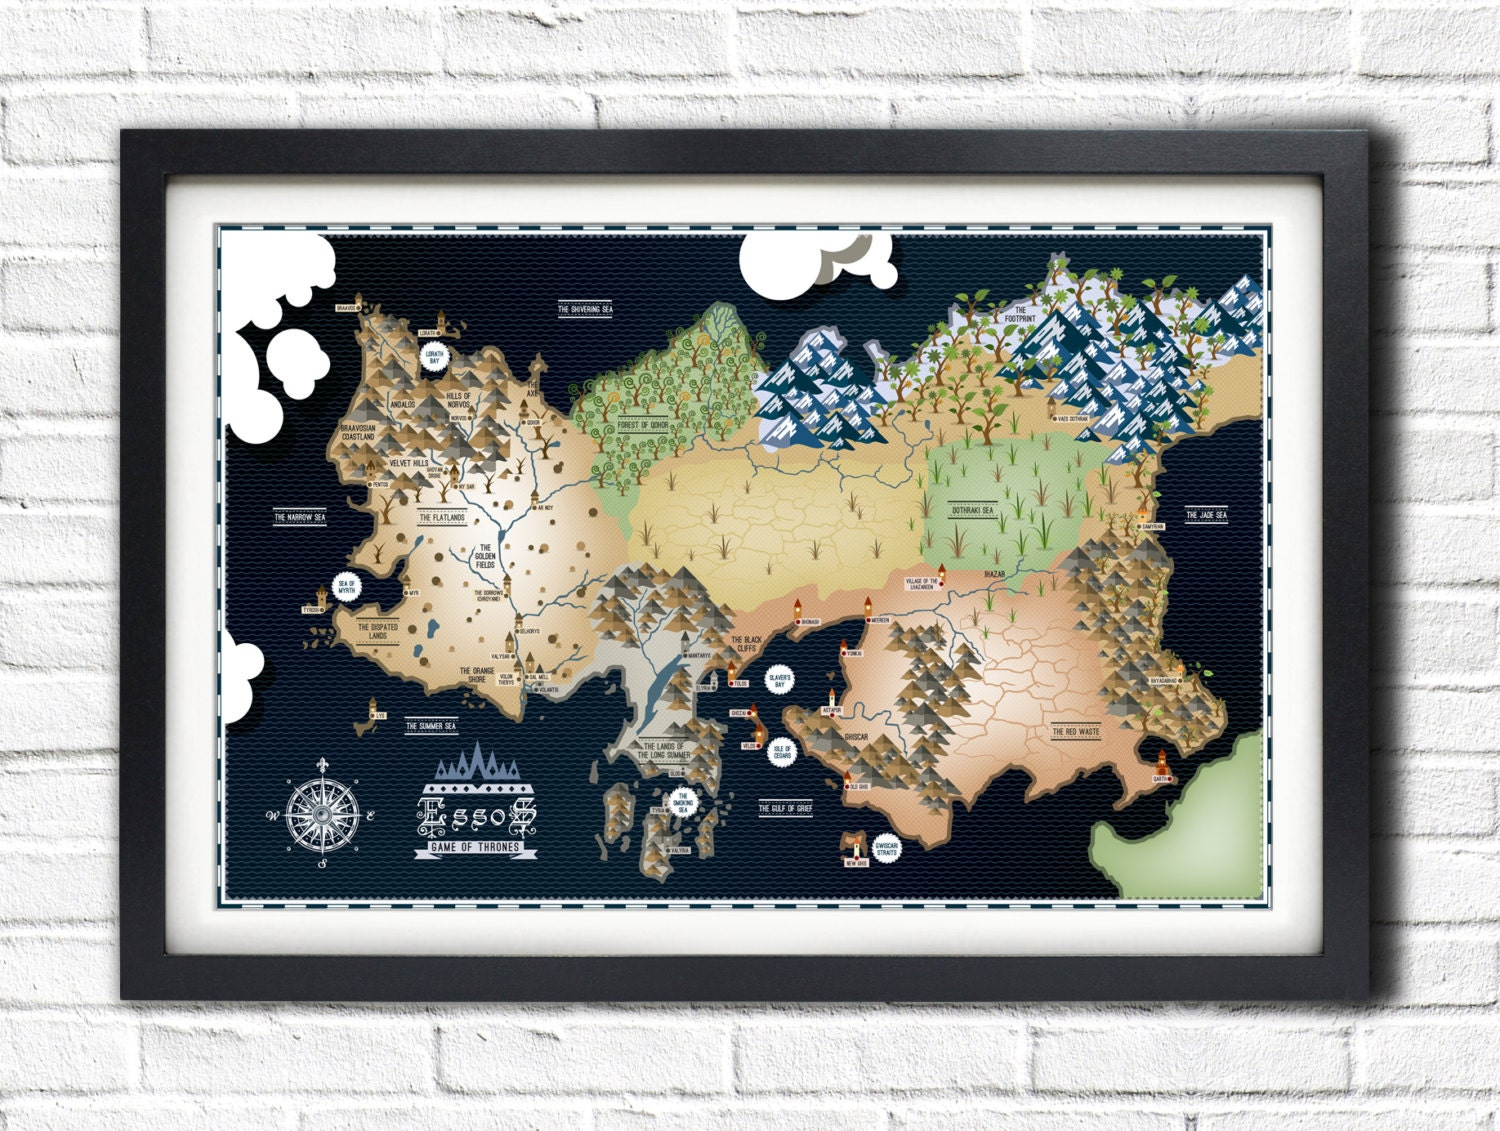 Game of thrones essos map 19x13 poster zoom gumiabroncs Image collections